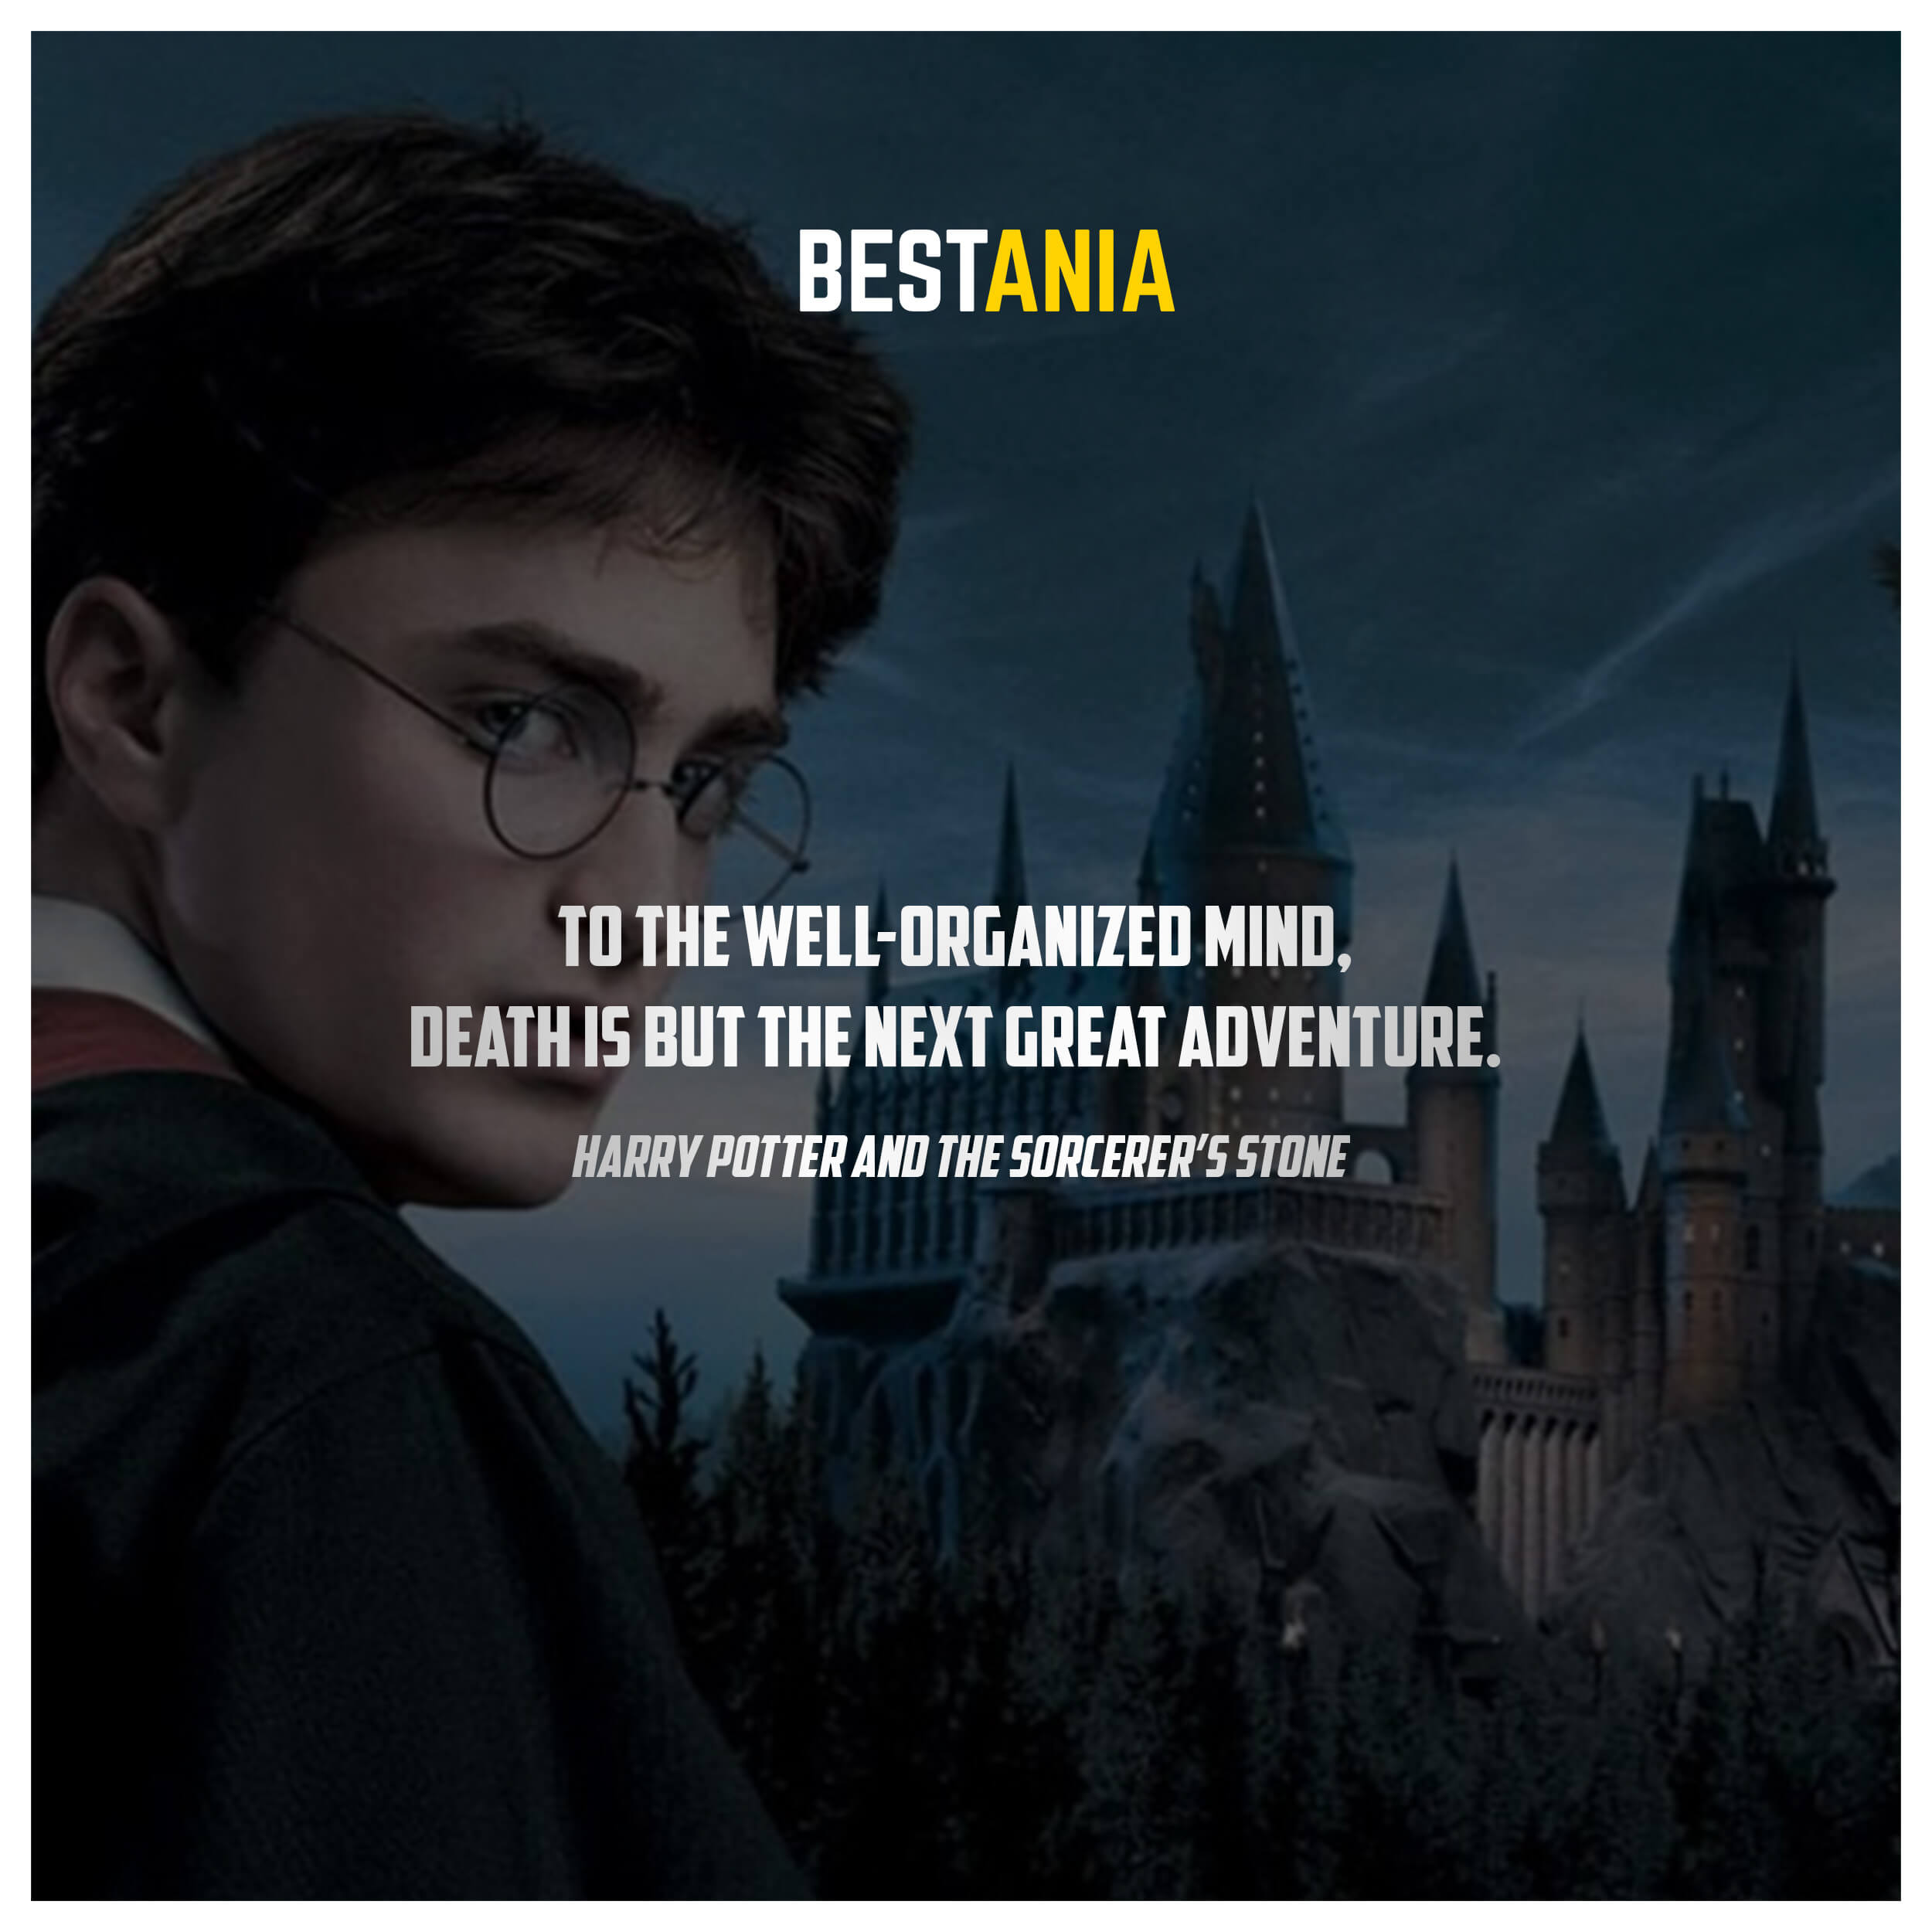 To the well-organized mind, death is but the next great adventure. – Harry Potter and the Sorcerer's Stone